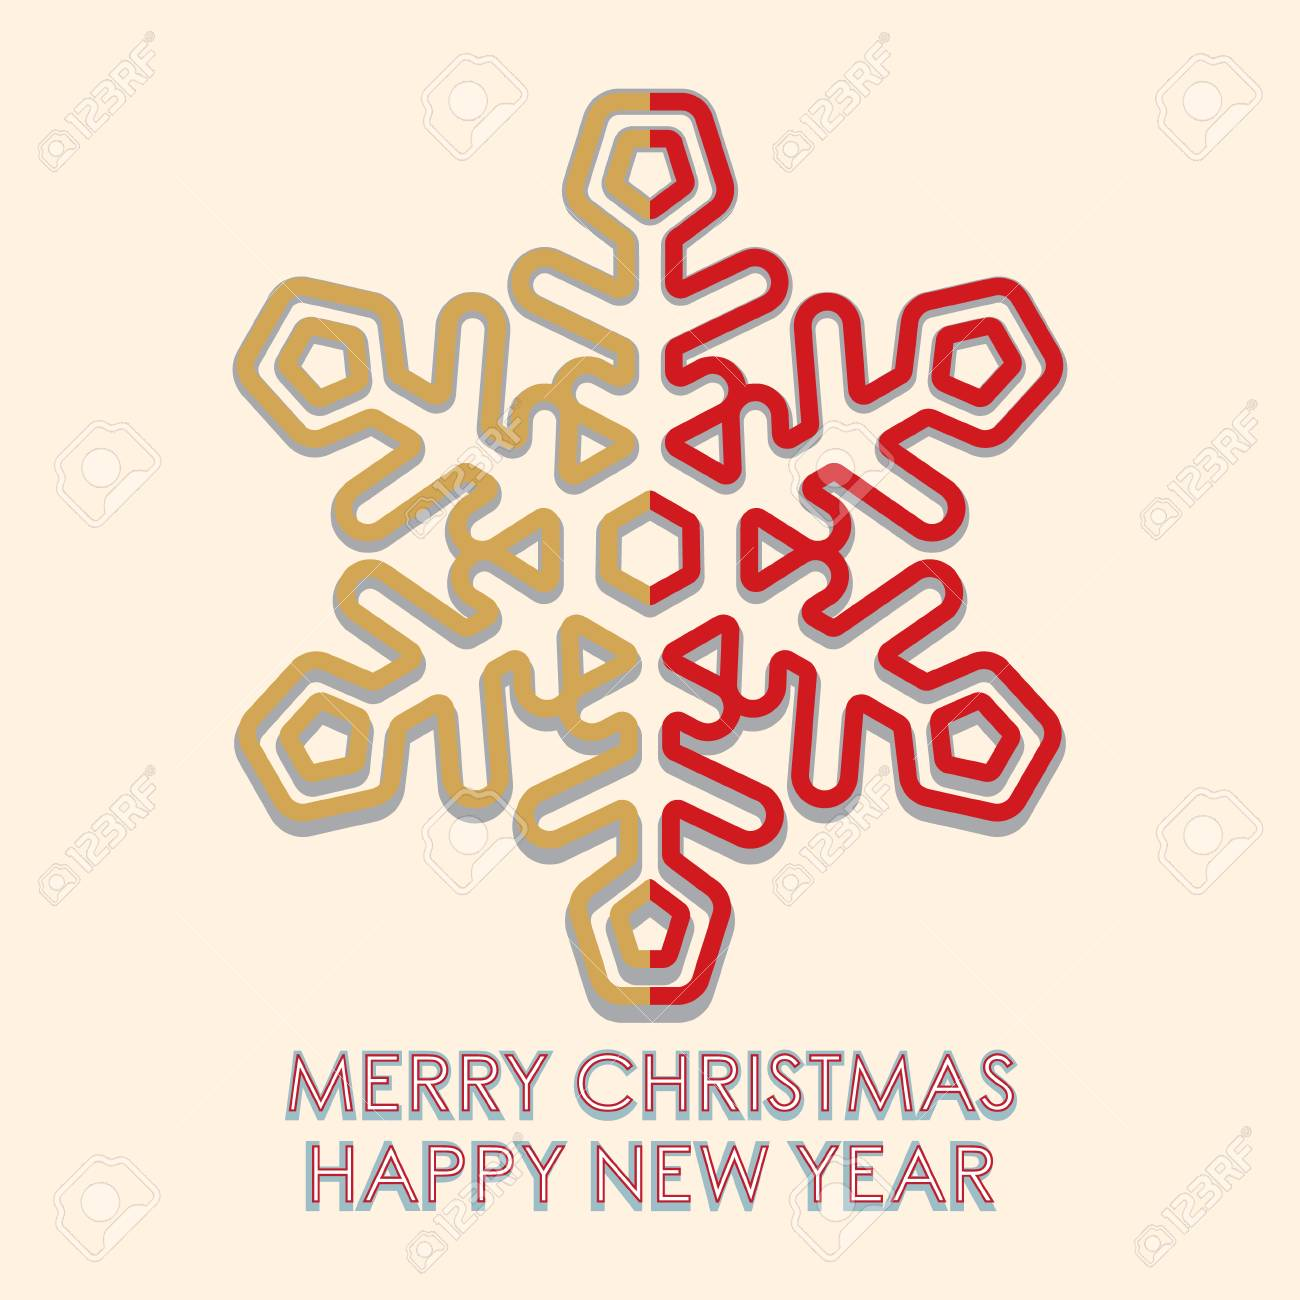 merry christmas and happy new year greeting card template for brochure poster banner